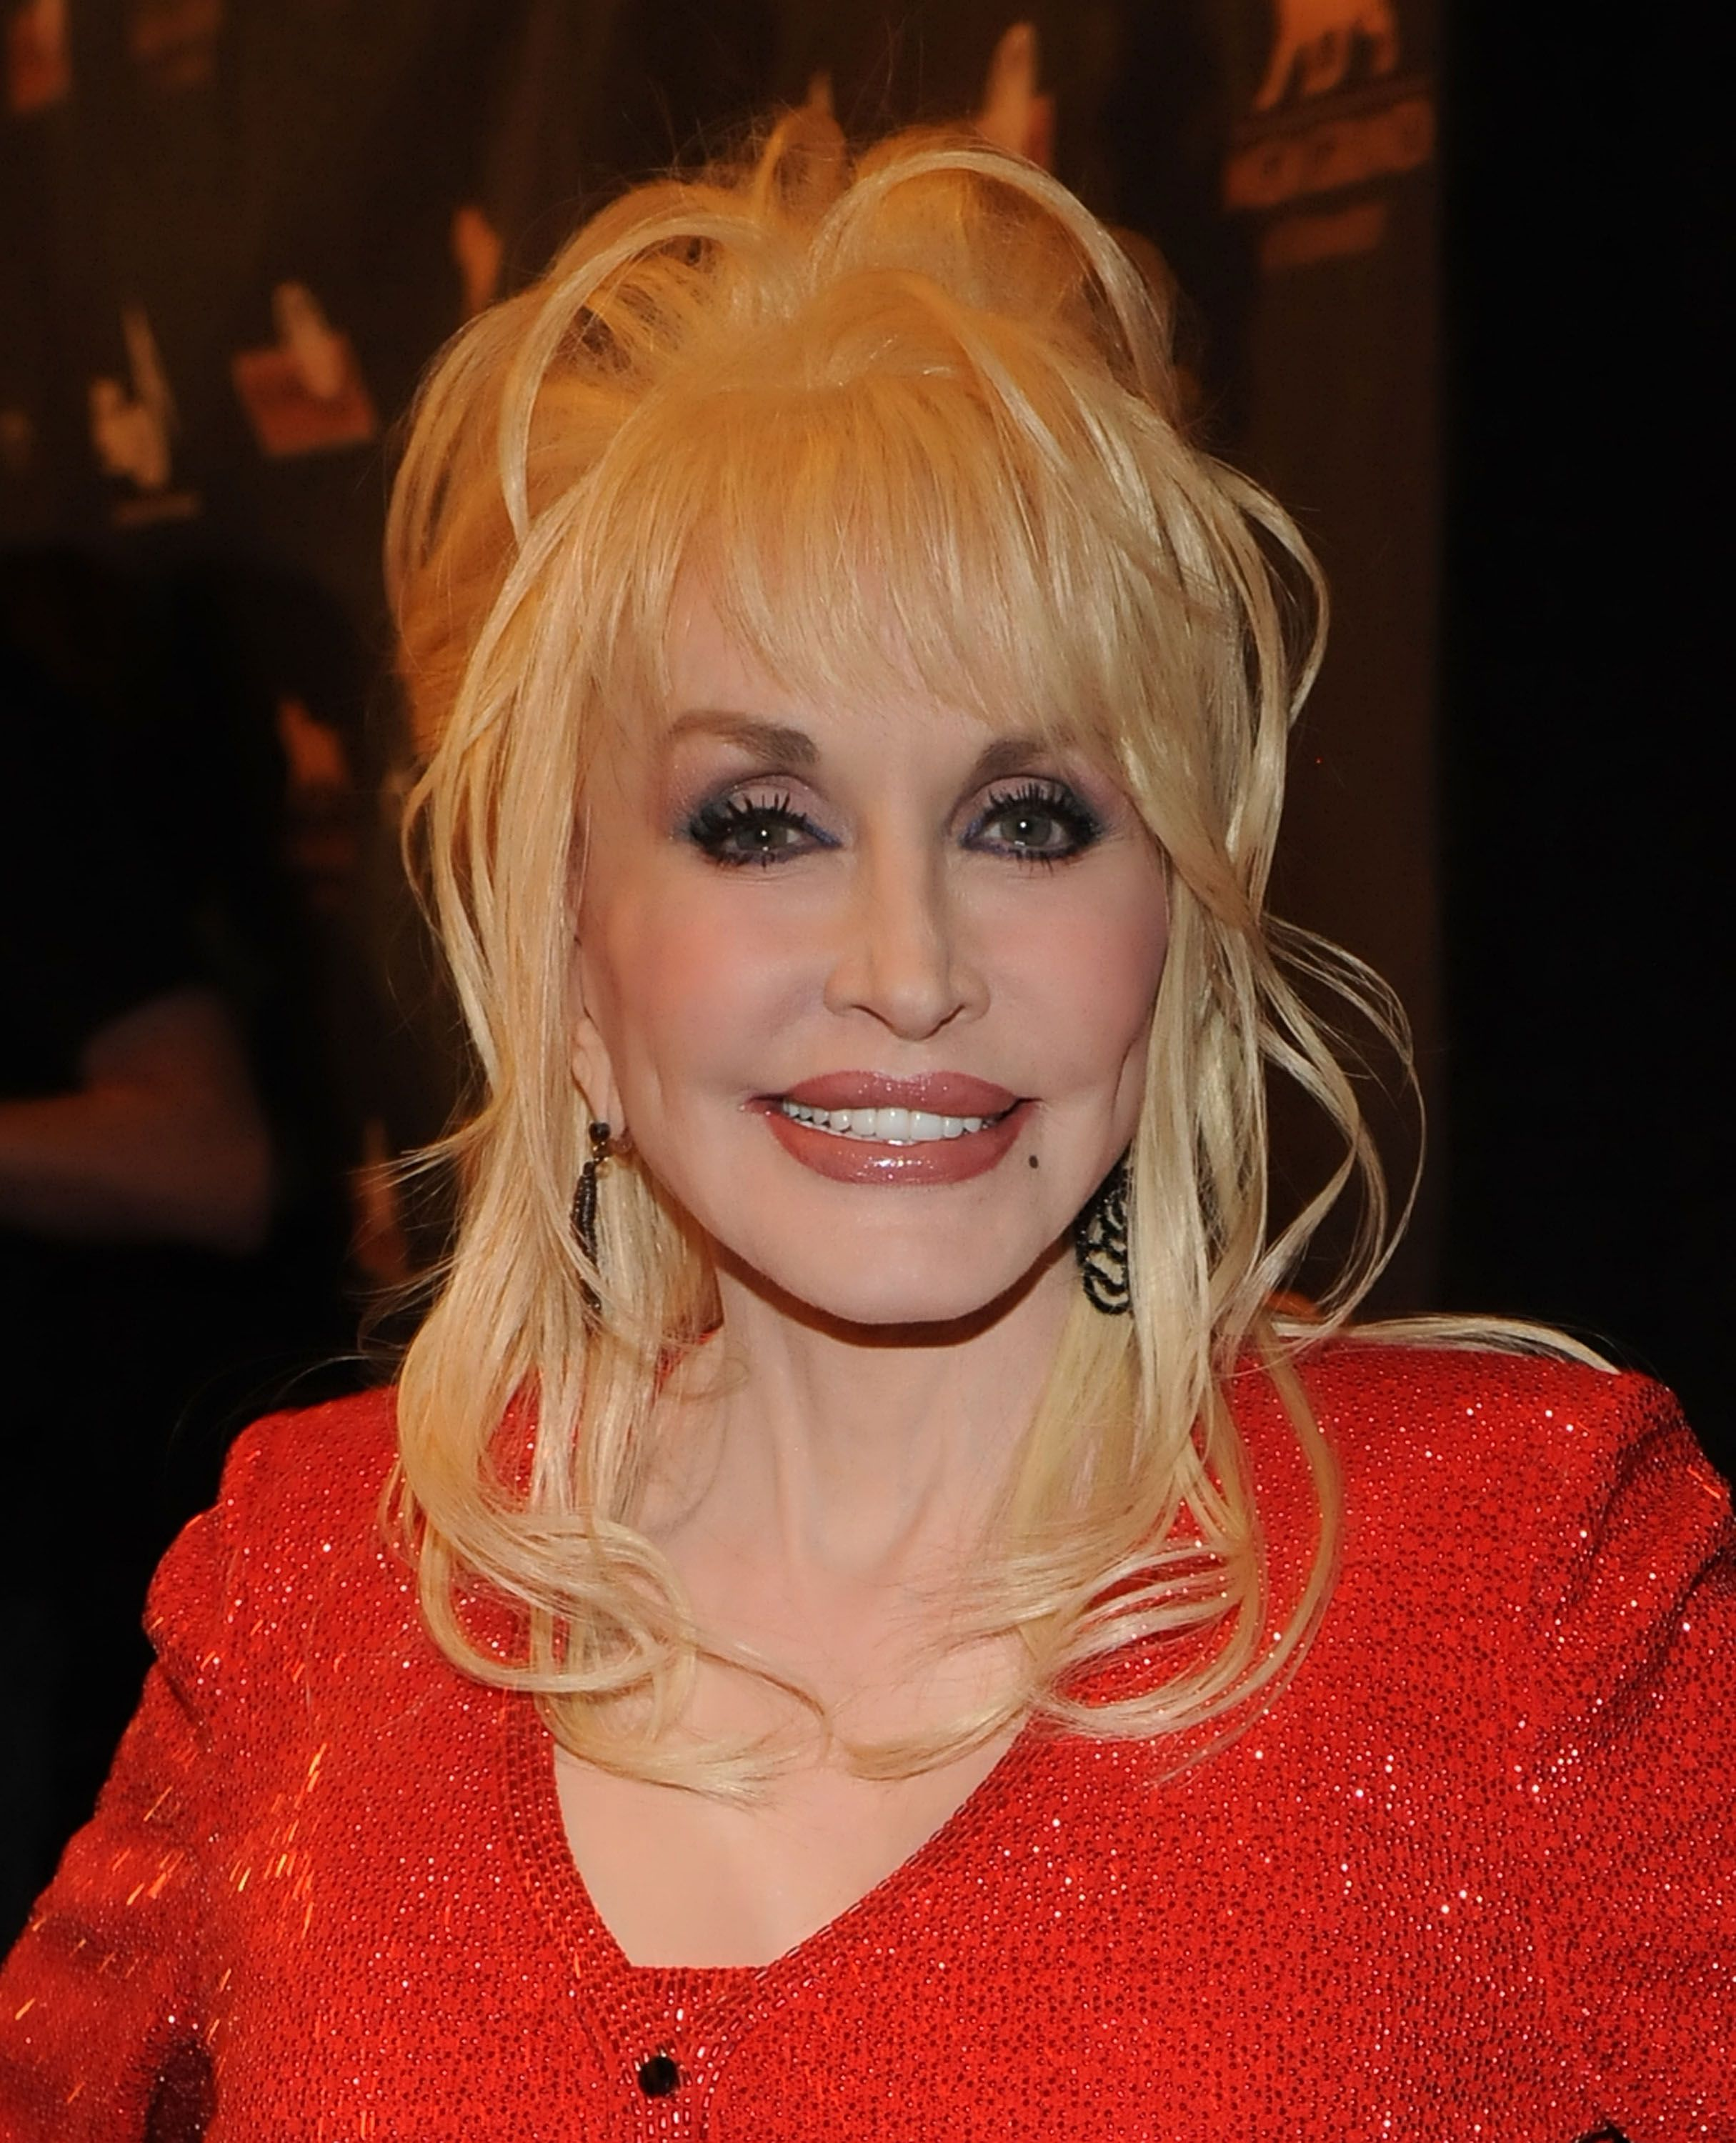 Dolly Parton at the Kenny Rogers: The First 50 Years award show at the MGM Grand at Foxwoods on April 10, 2010 in Ledyard Center, Connecticut. | Photo: Getty Images